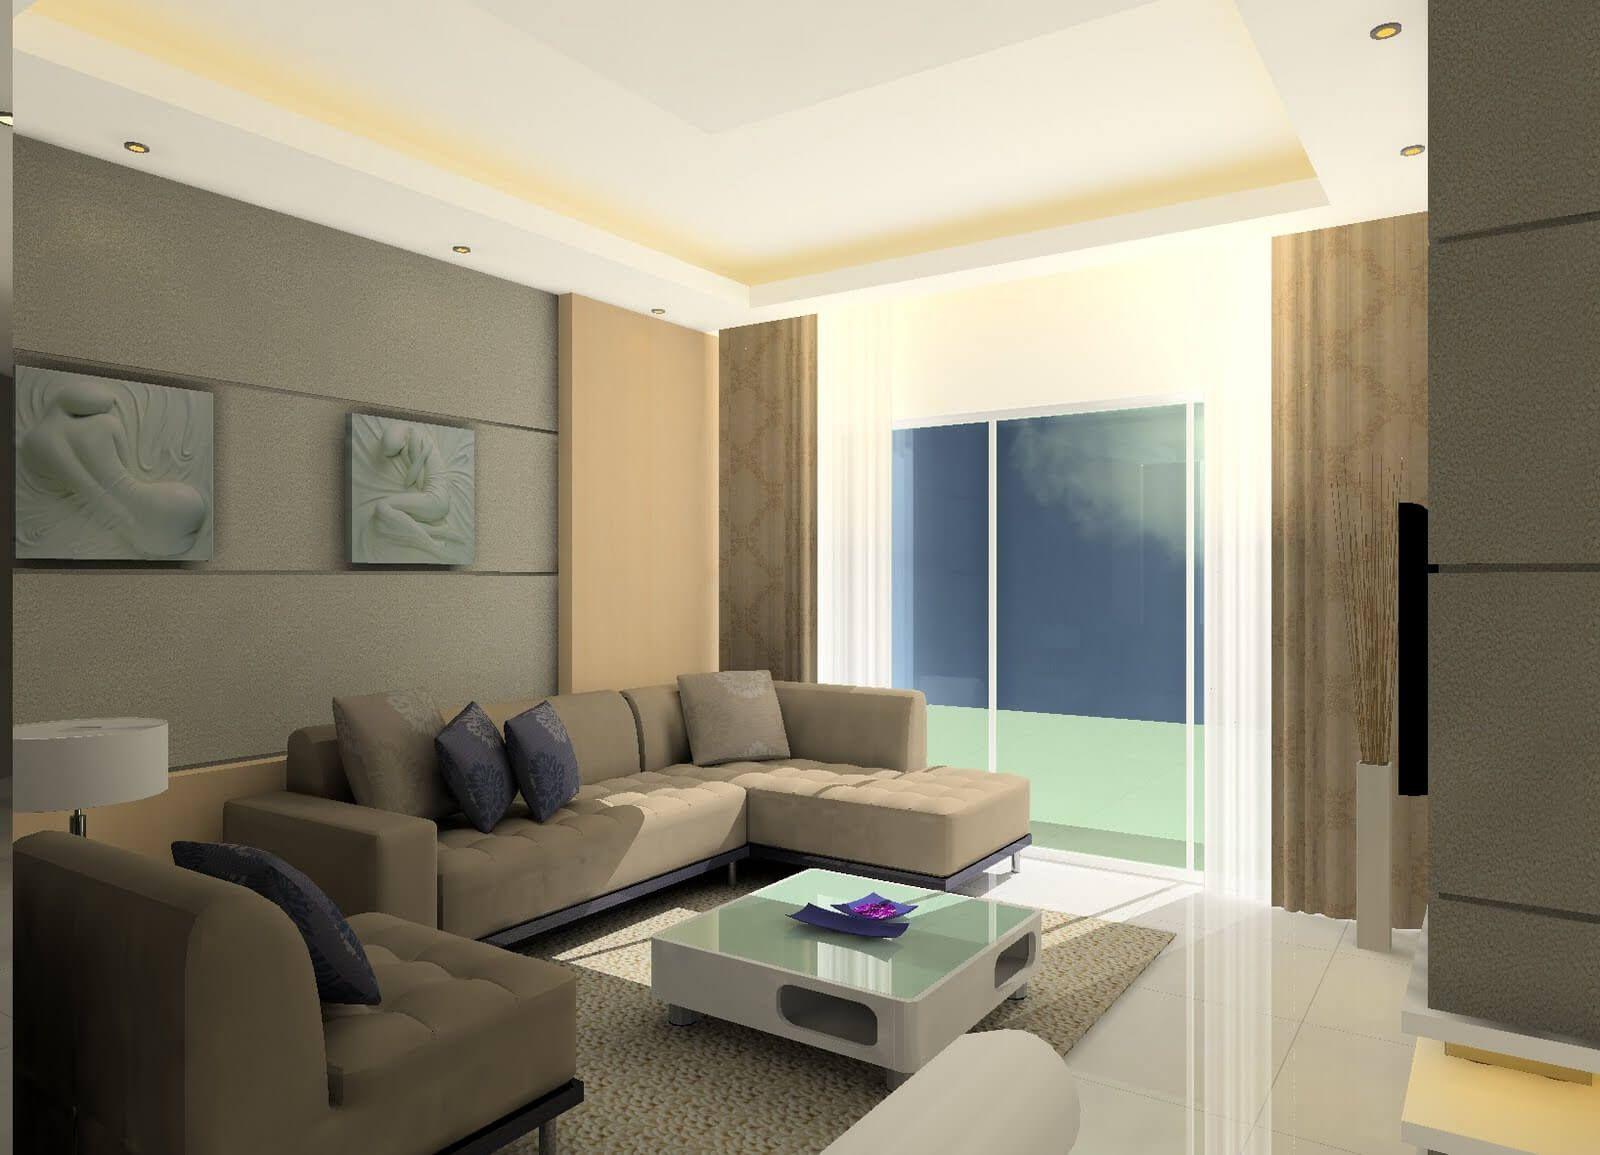 60 Feng Shui Living Room Decorating Tips With Images Feng Shui